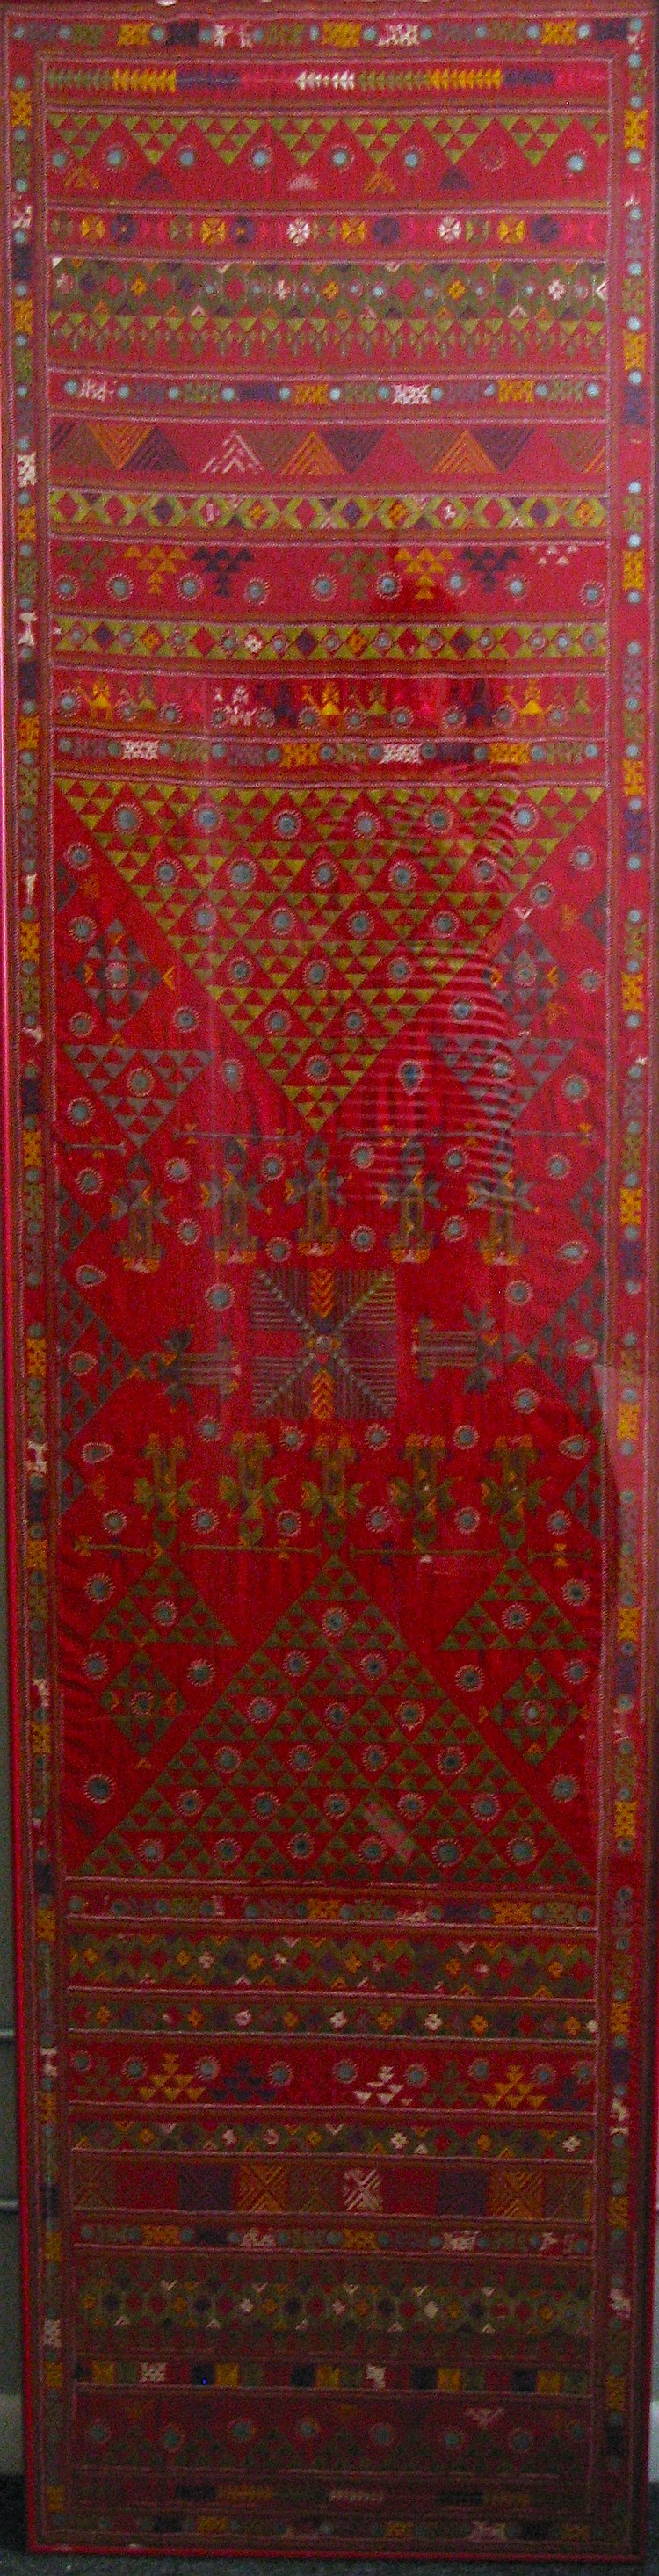 Central Asia Embroidery Panel